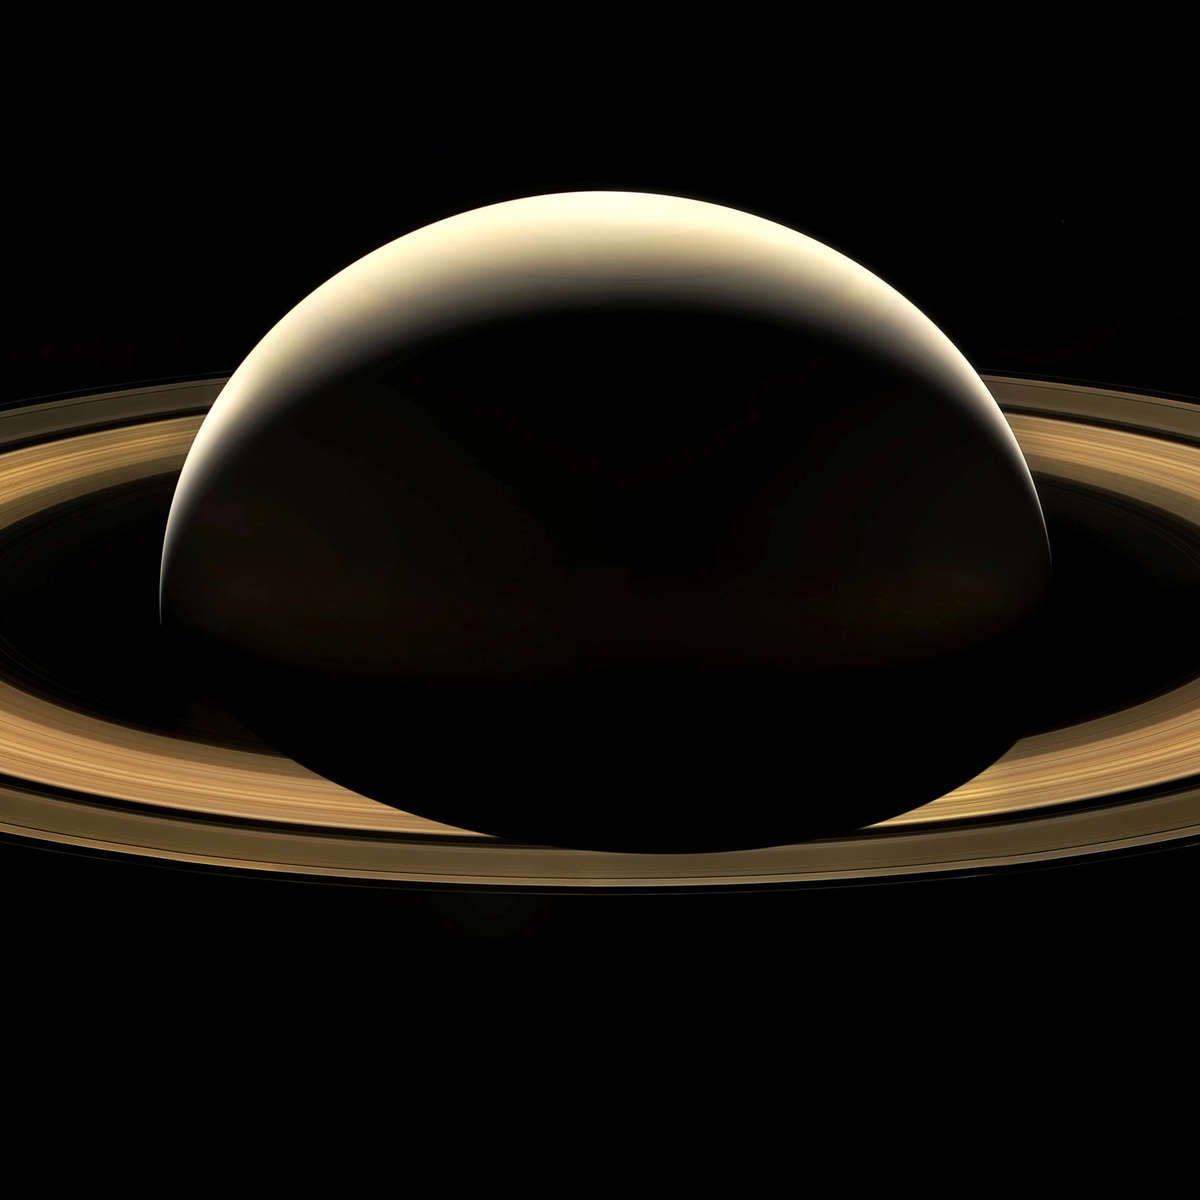 A mosaic from some of the last images Cassini ever took of Saturn. Credit: NASA/JPL-Caltech/Space Science Institute/Jason Major